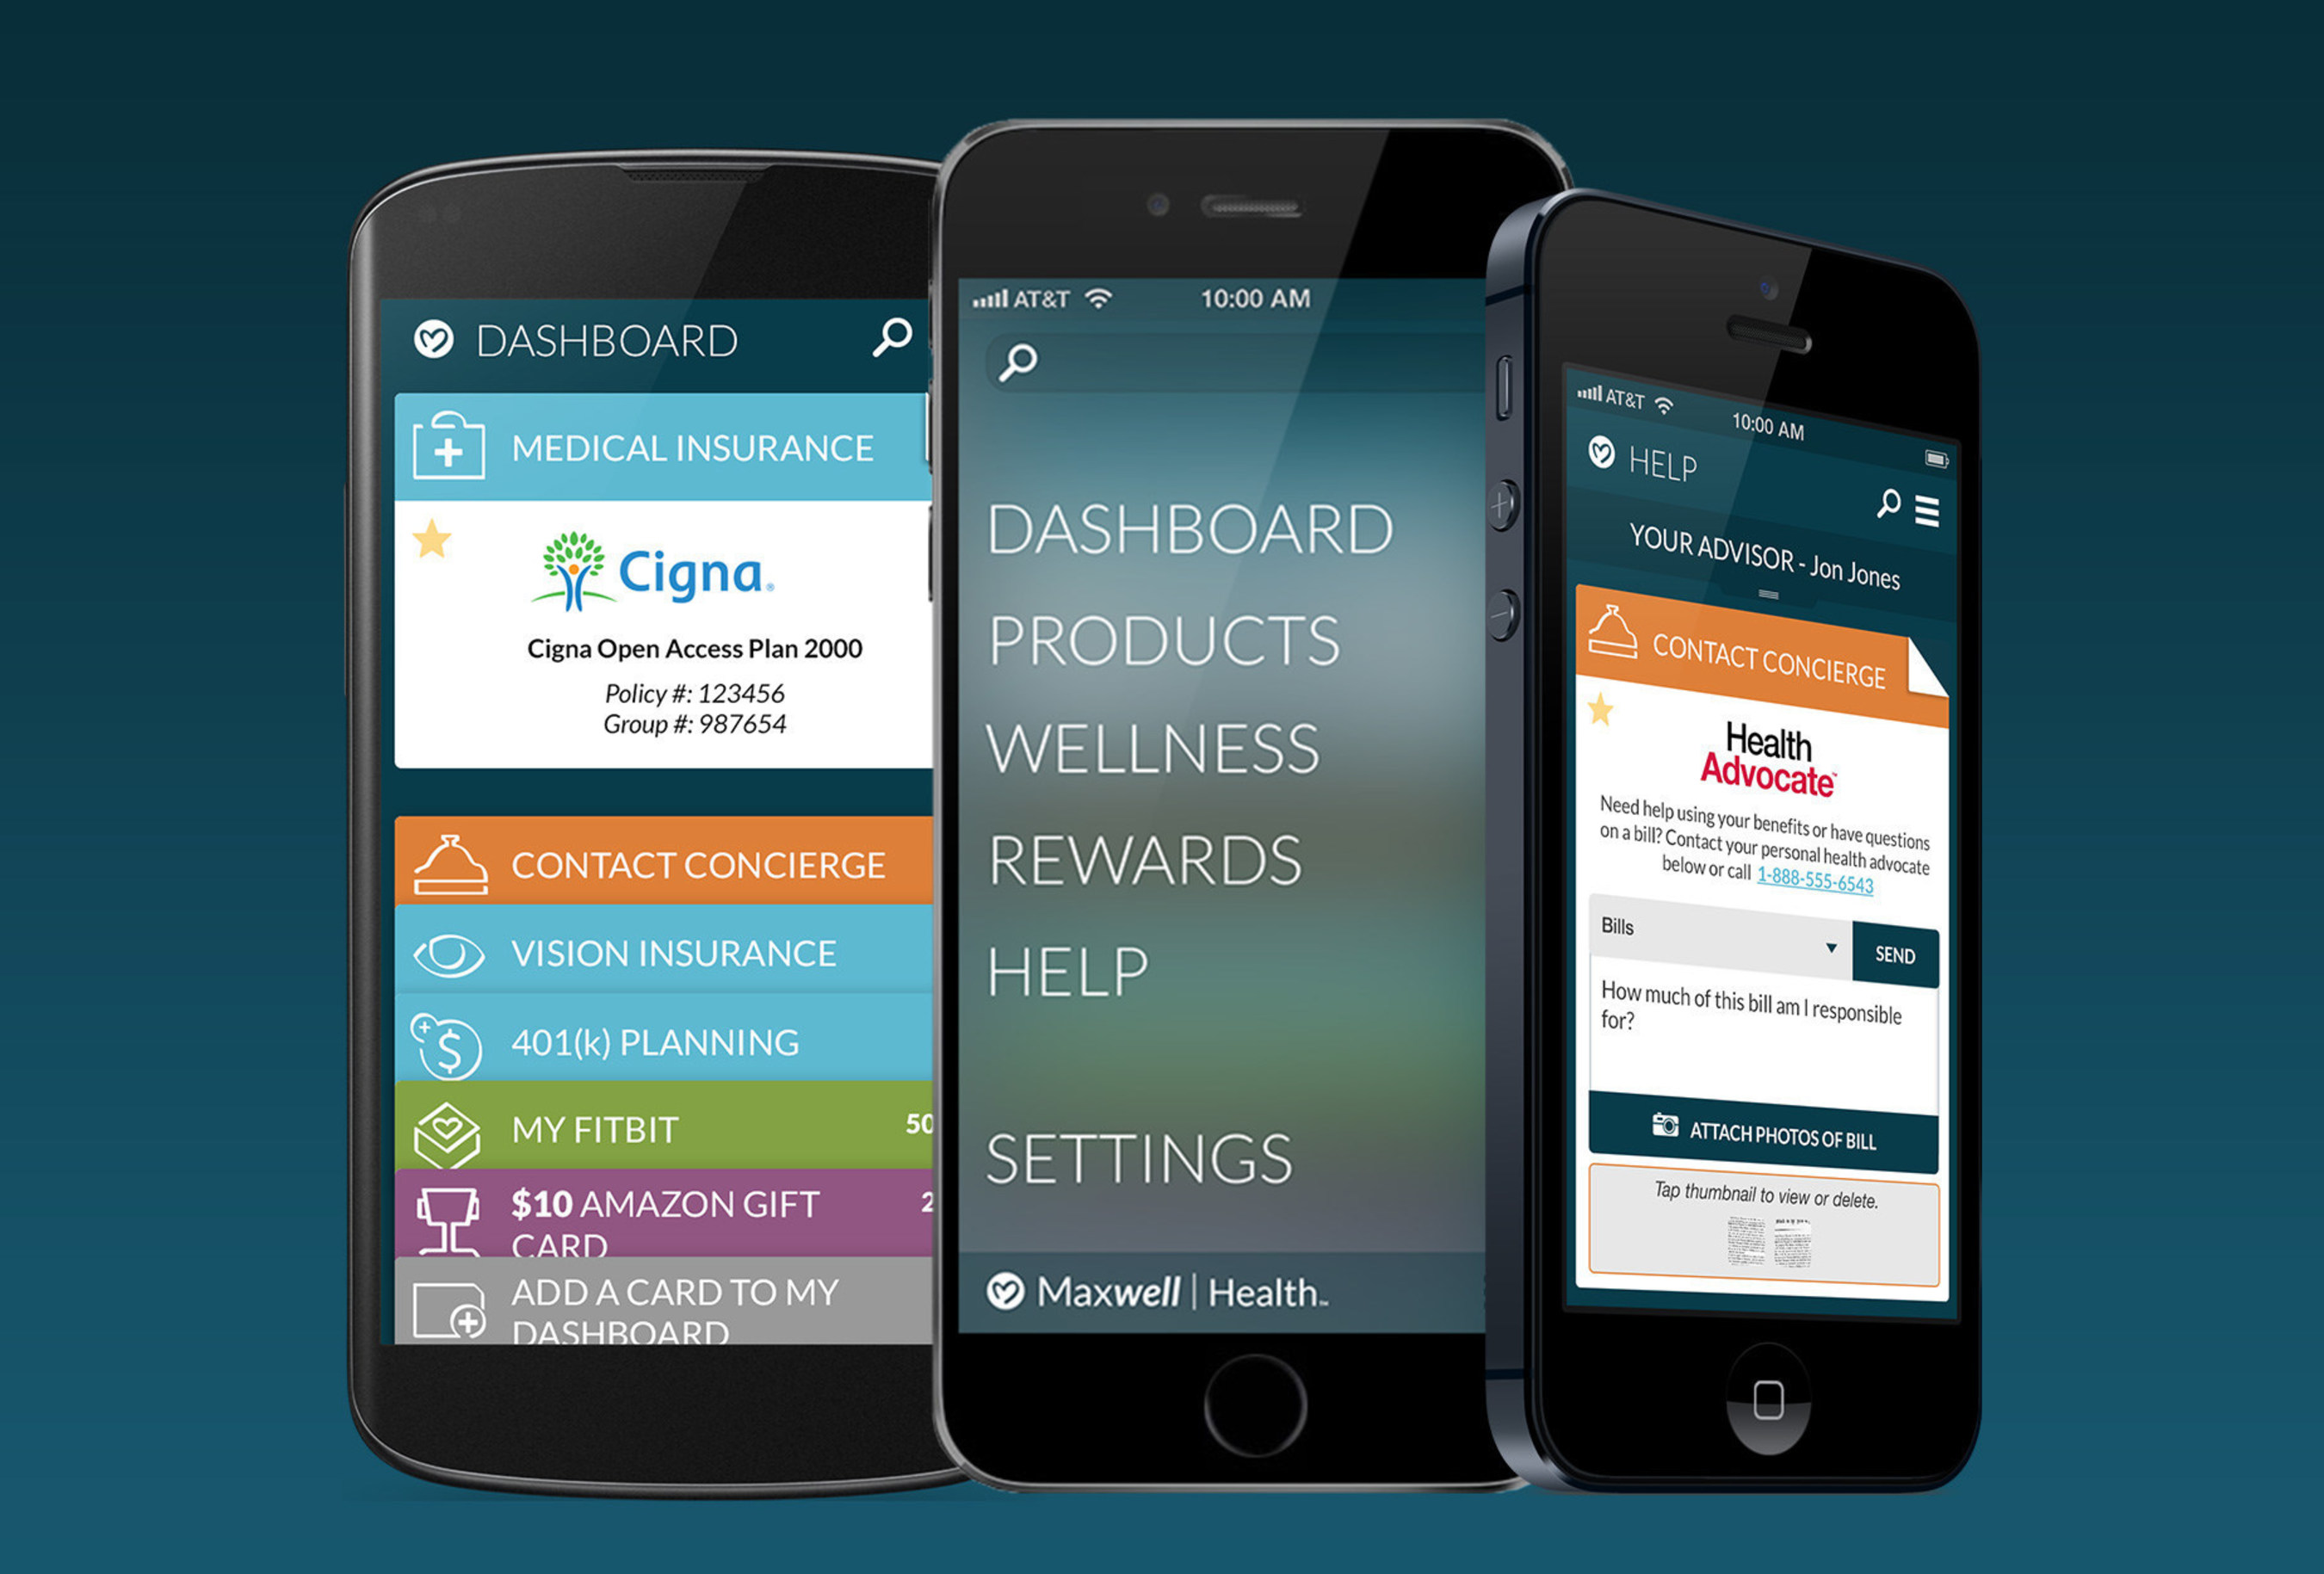 Maxwell Health's mobile app provides full transparency into insurance and employee benefits with a virtual insurance ID card, incentivizes healthy behavior with a wellness program and rewards store, and integrates with best in class services so that insurance and benefits are easy and awesome.